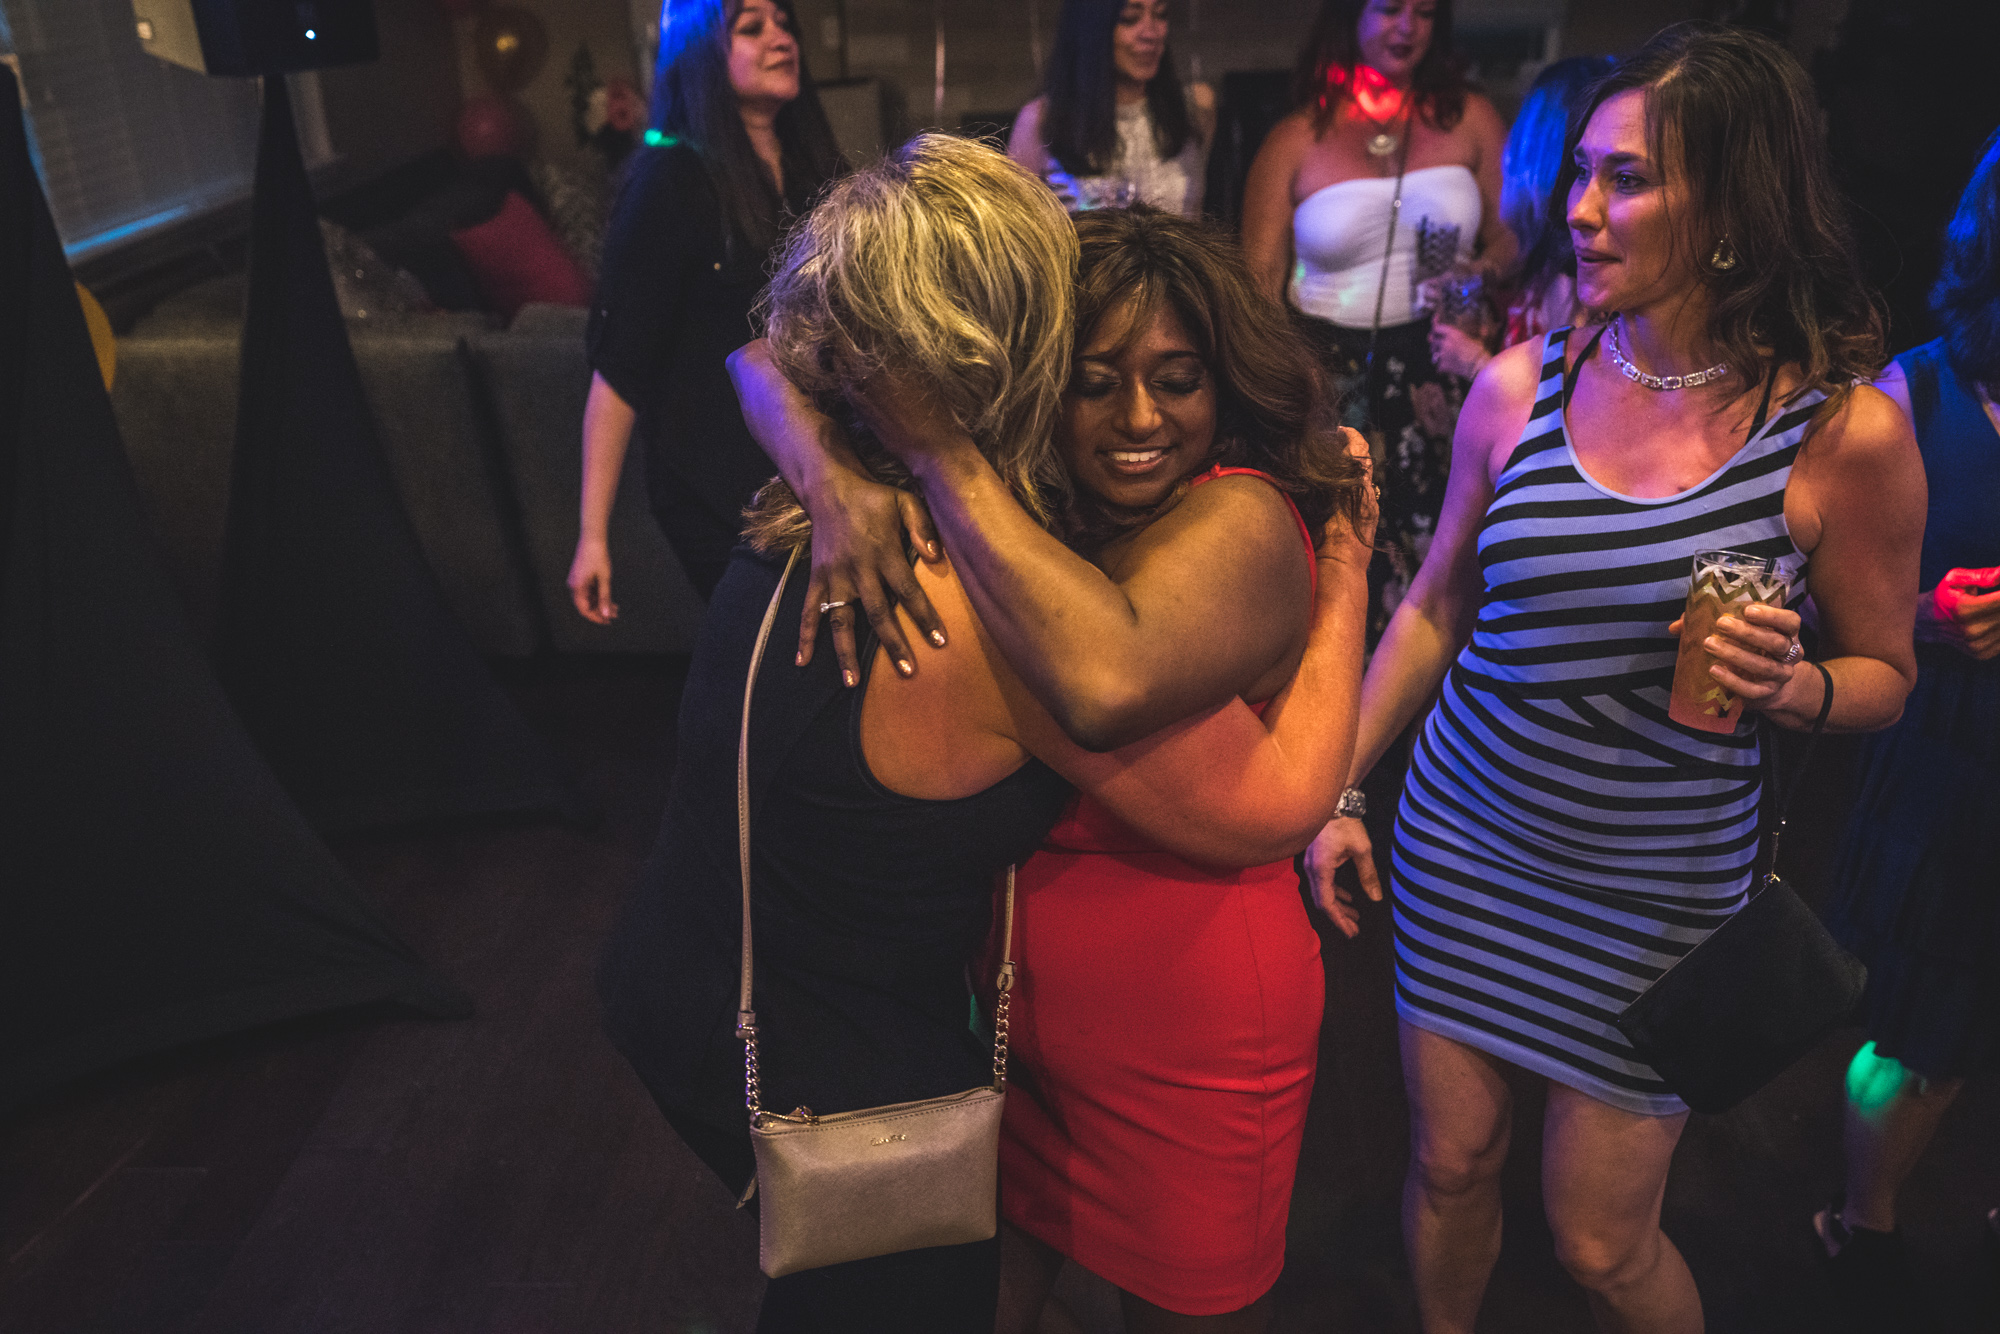 Woman in a red dress hugs woman in a black dress in the middle of a house party